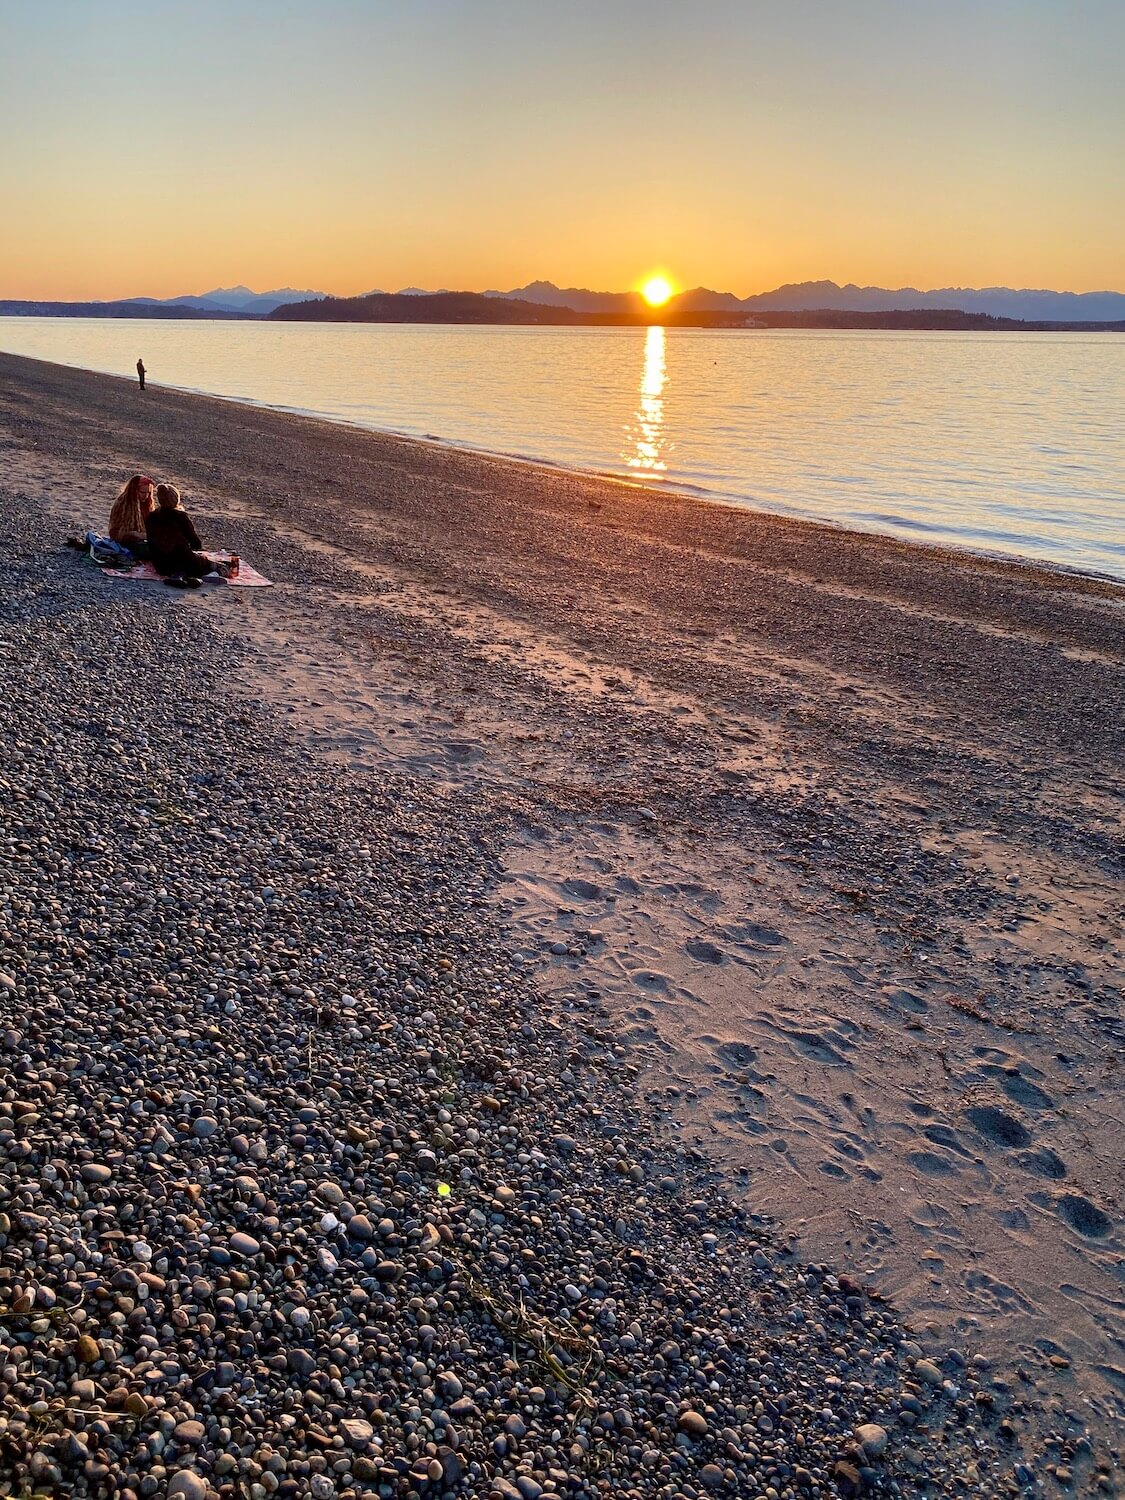 An orange glowing sun sets behind the Olympic Mountains as the rays shine on the vast Puget Sound waters. A couple enjoys the sunset on a blanket on the beach. This is a great winter outdoor thing to do in Seattle.